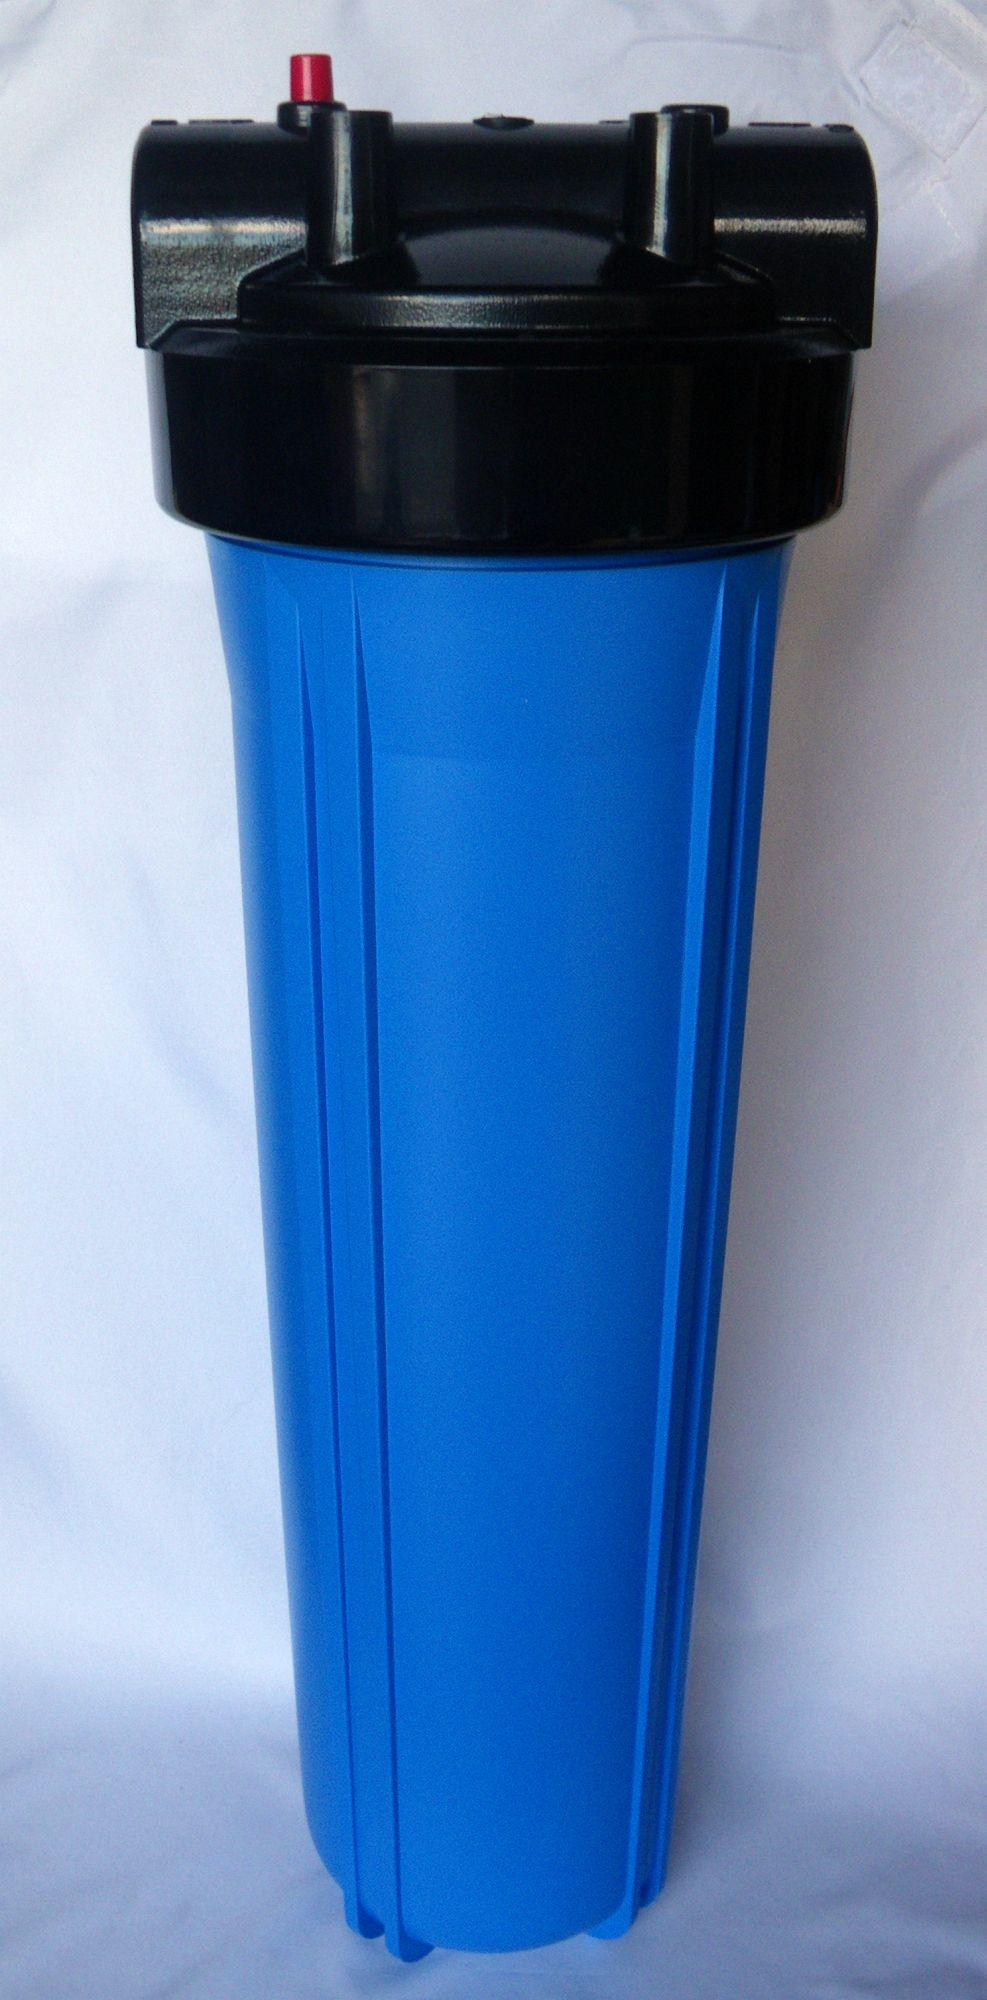 Big Blue Filter Housing For 20 Quot X 4 5 Quot Filter Filter